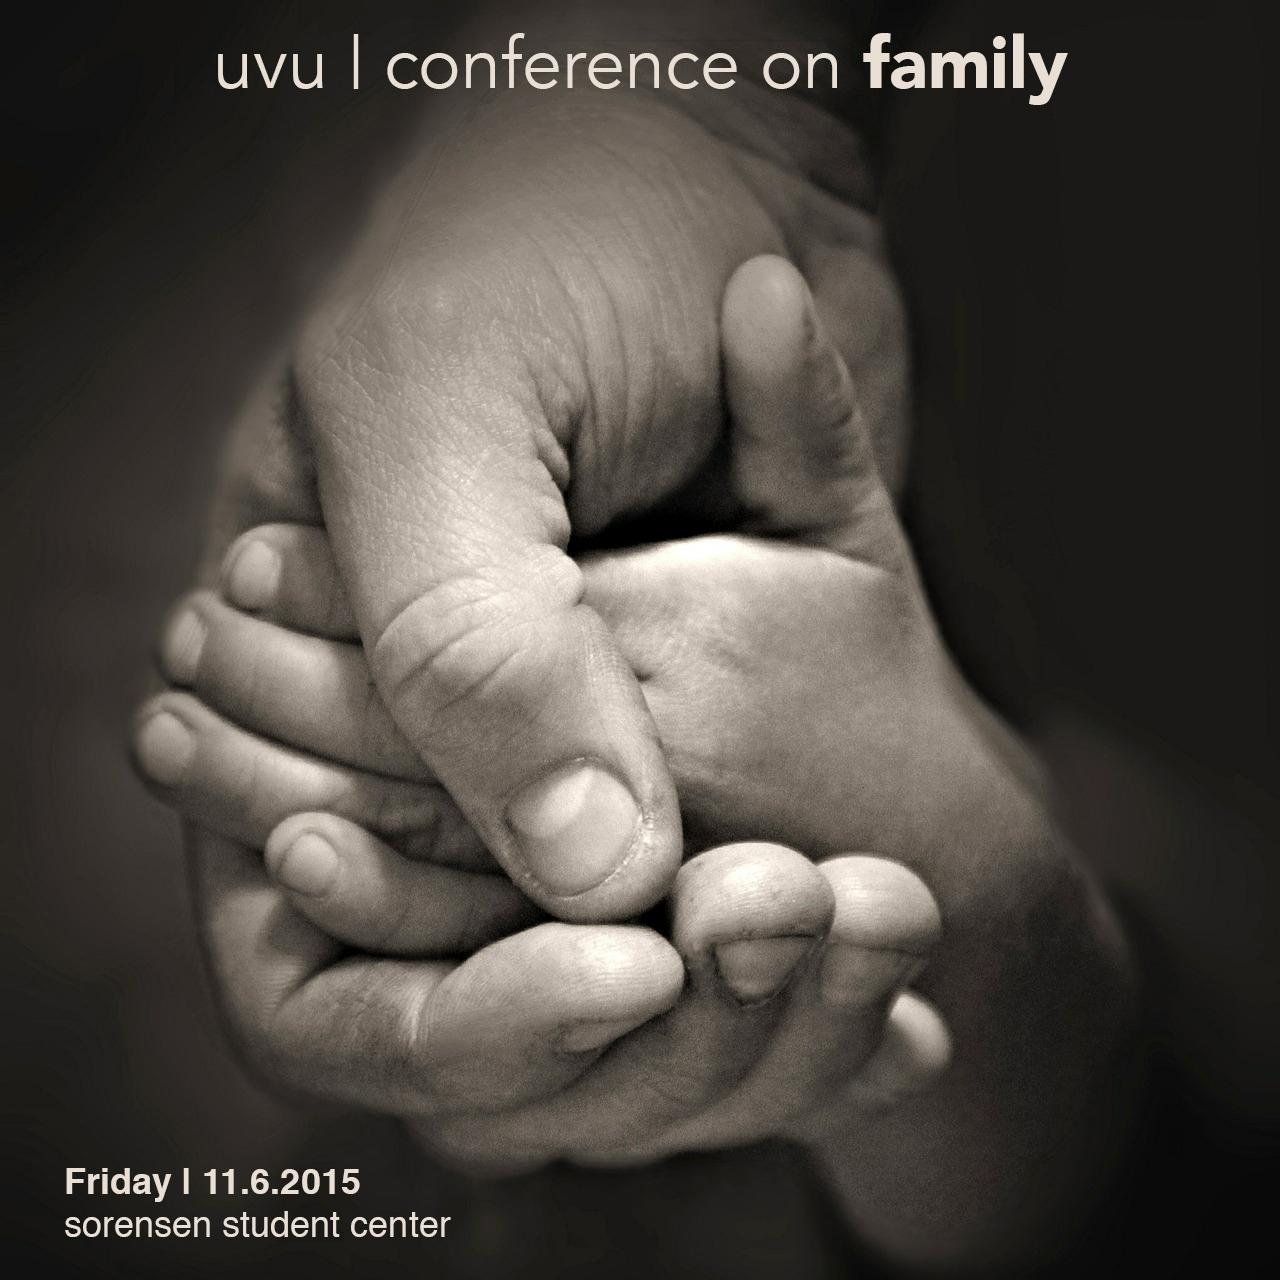 2015 UVU Conference on Family Scheduled for November 6